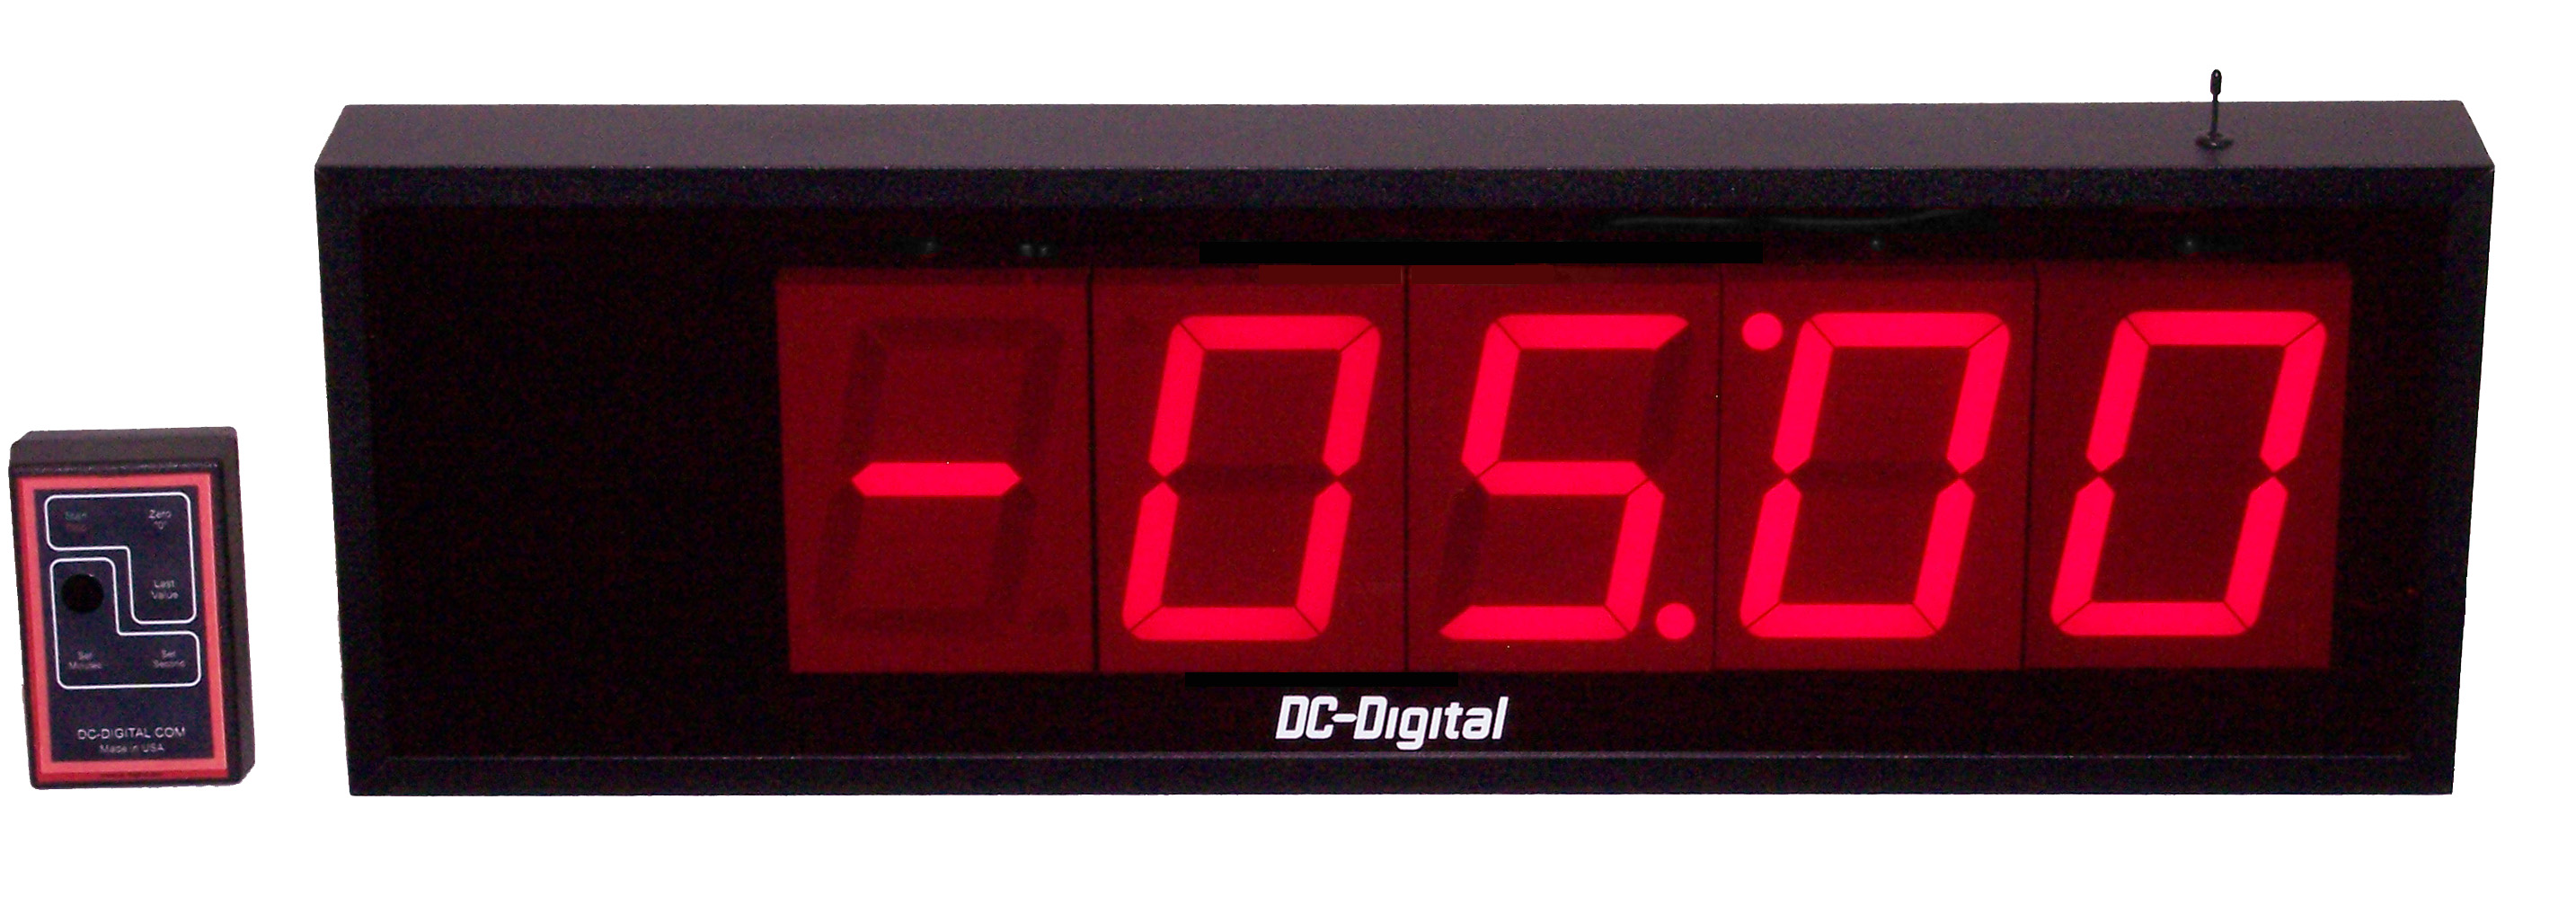 DC-405T-DN-Neg, Custom Speech Timer - Goes to zero than counts up w/neg sign